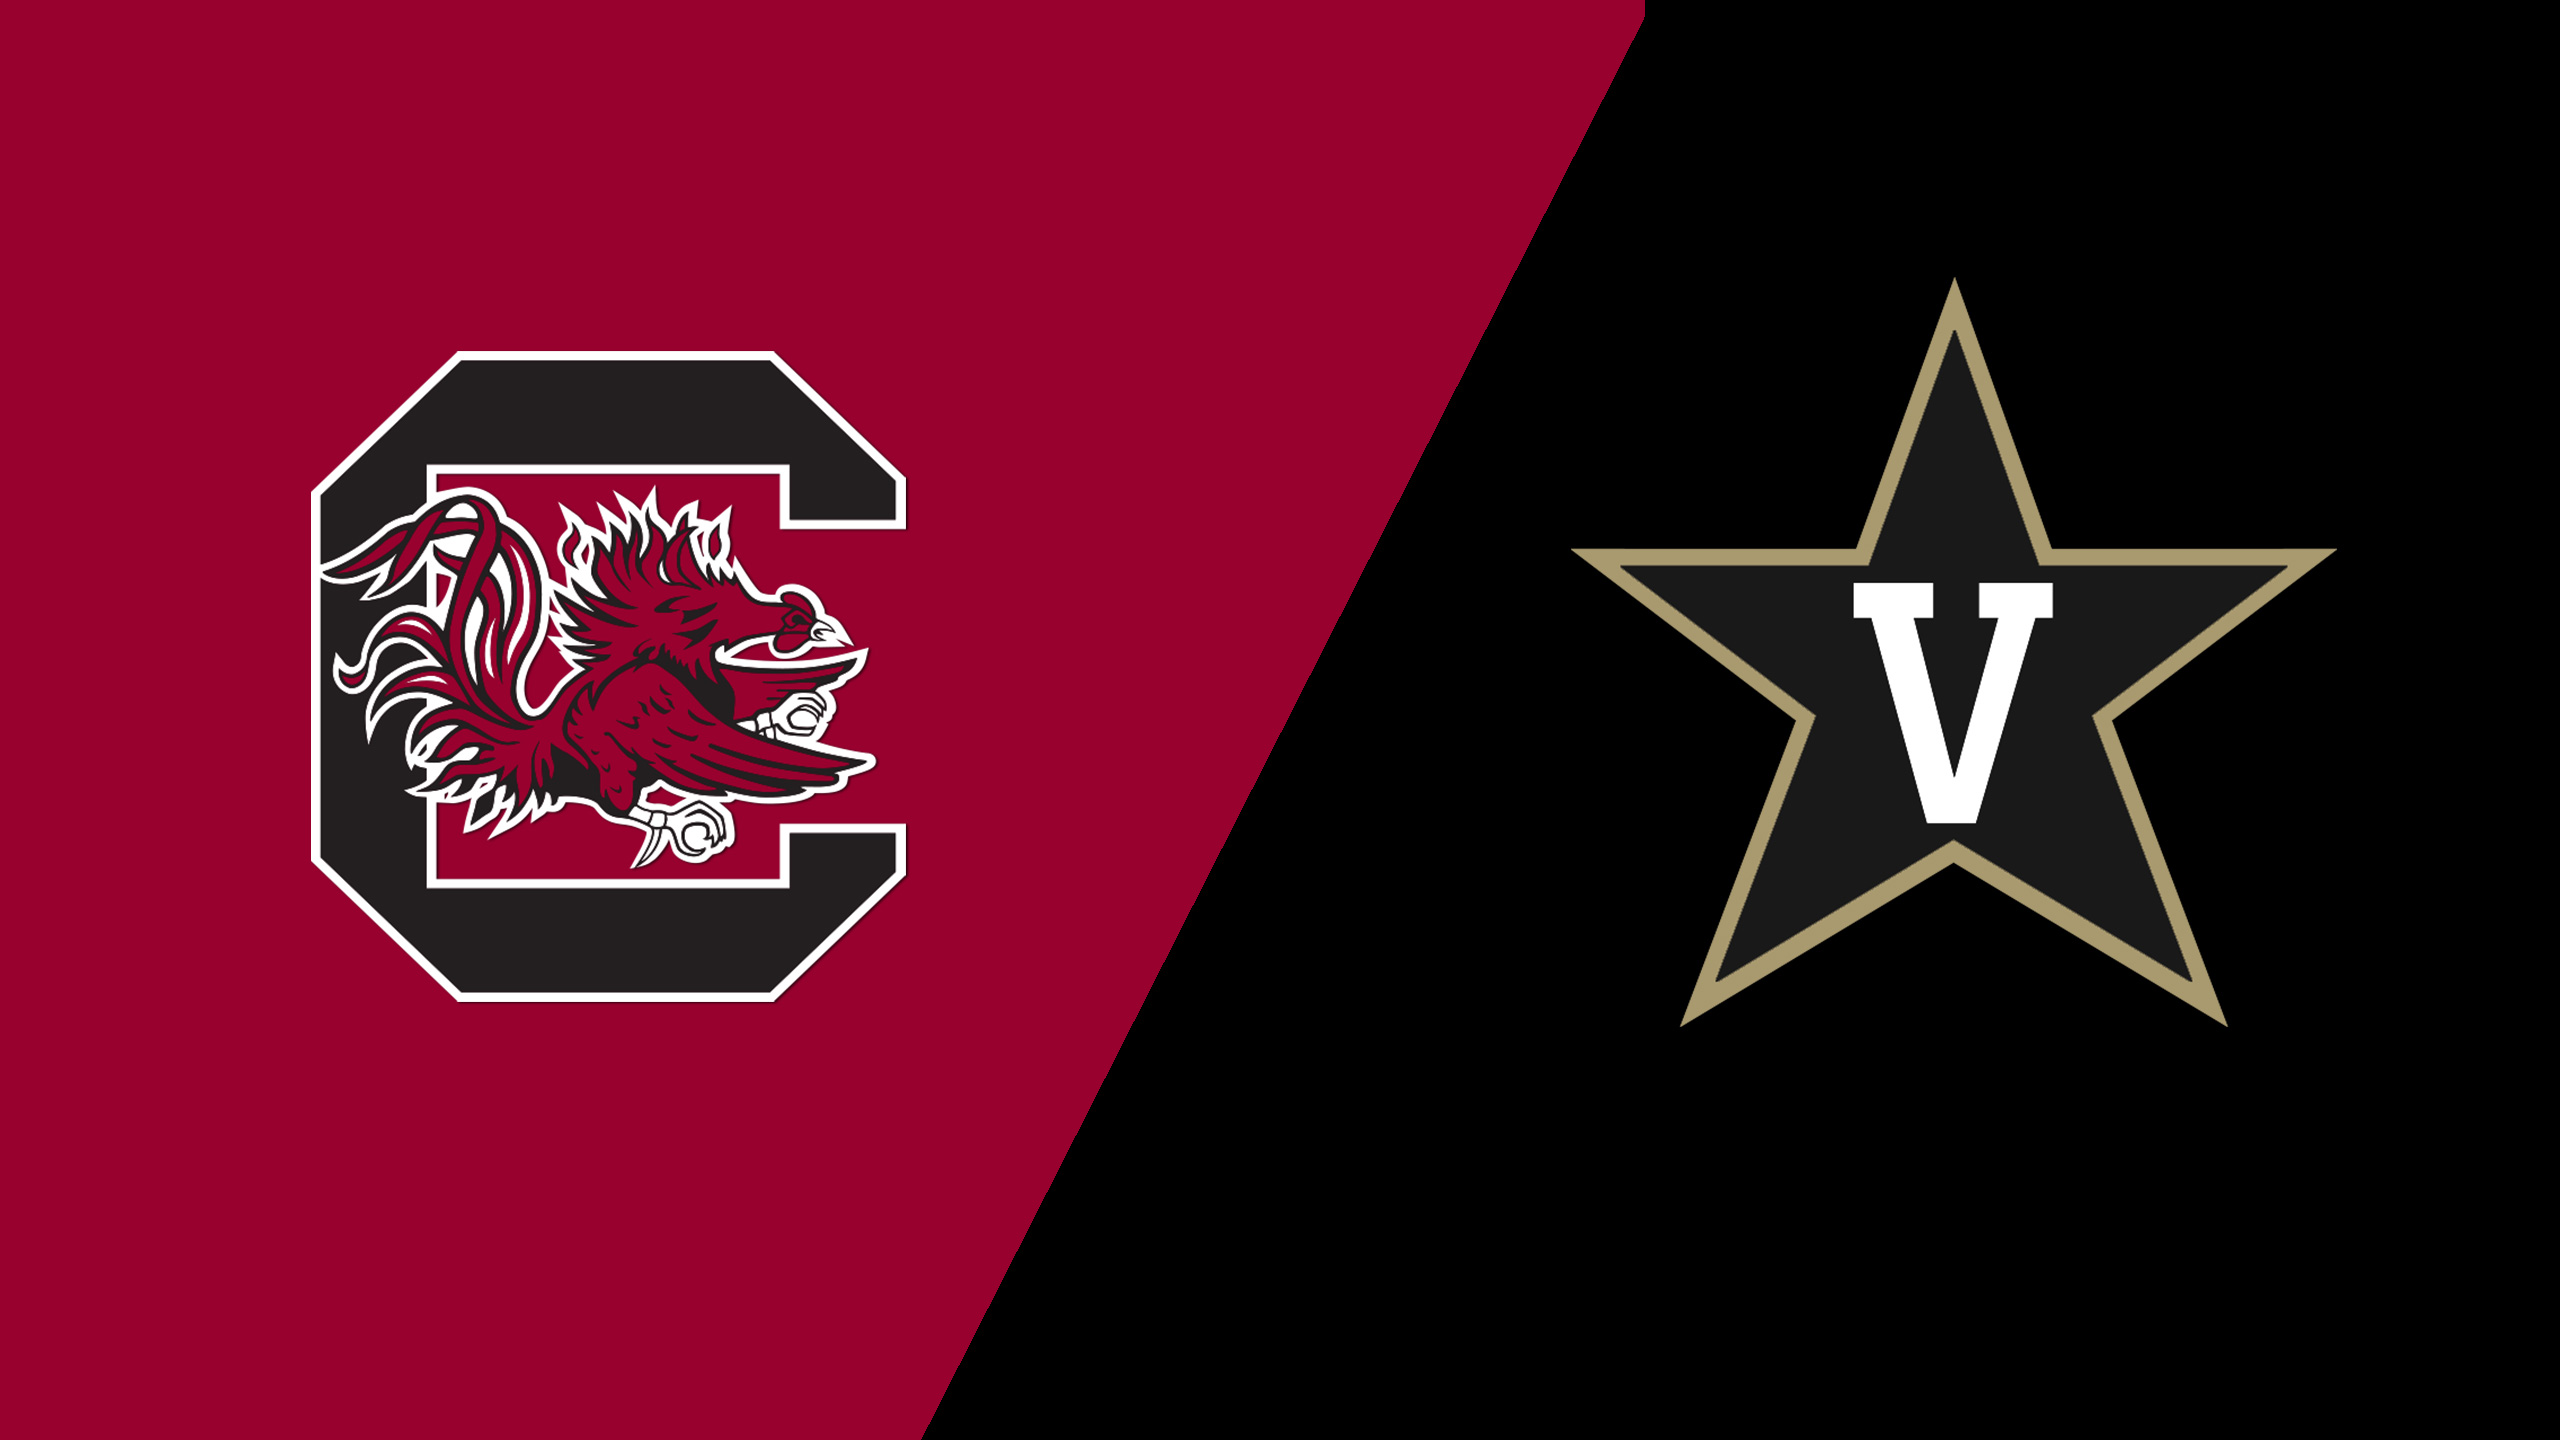 South Carolina vs. Vanderbilt (Football)